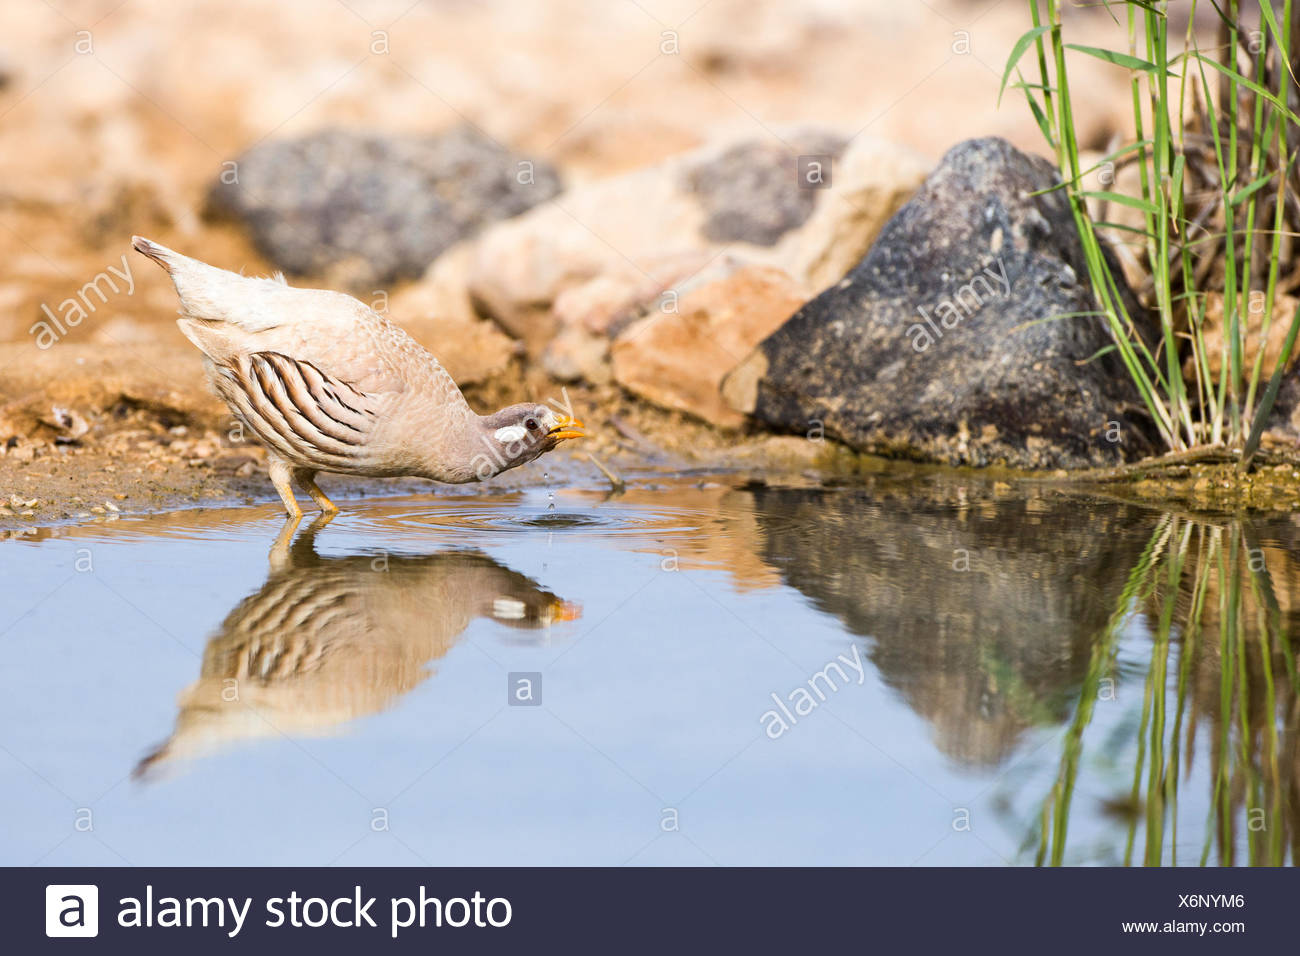 sand partridge (Ammoperdix heyi) is a gamebird in the pheasant family Phasianidae of the order Galliformes, gallinaceous birds. Stock Photo